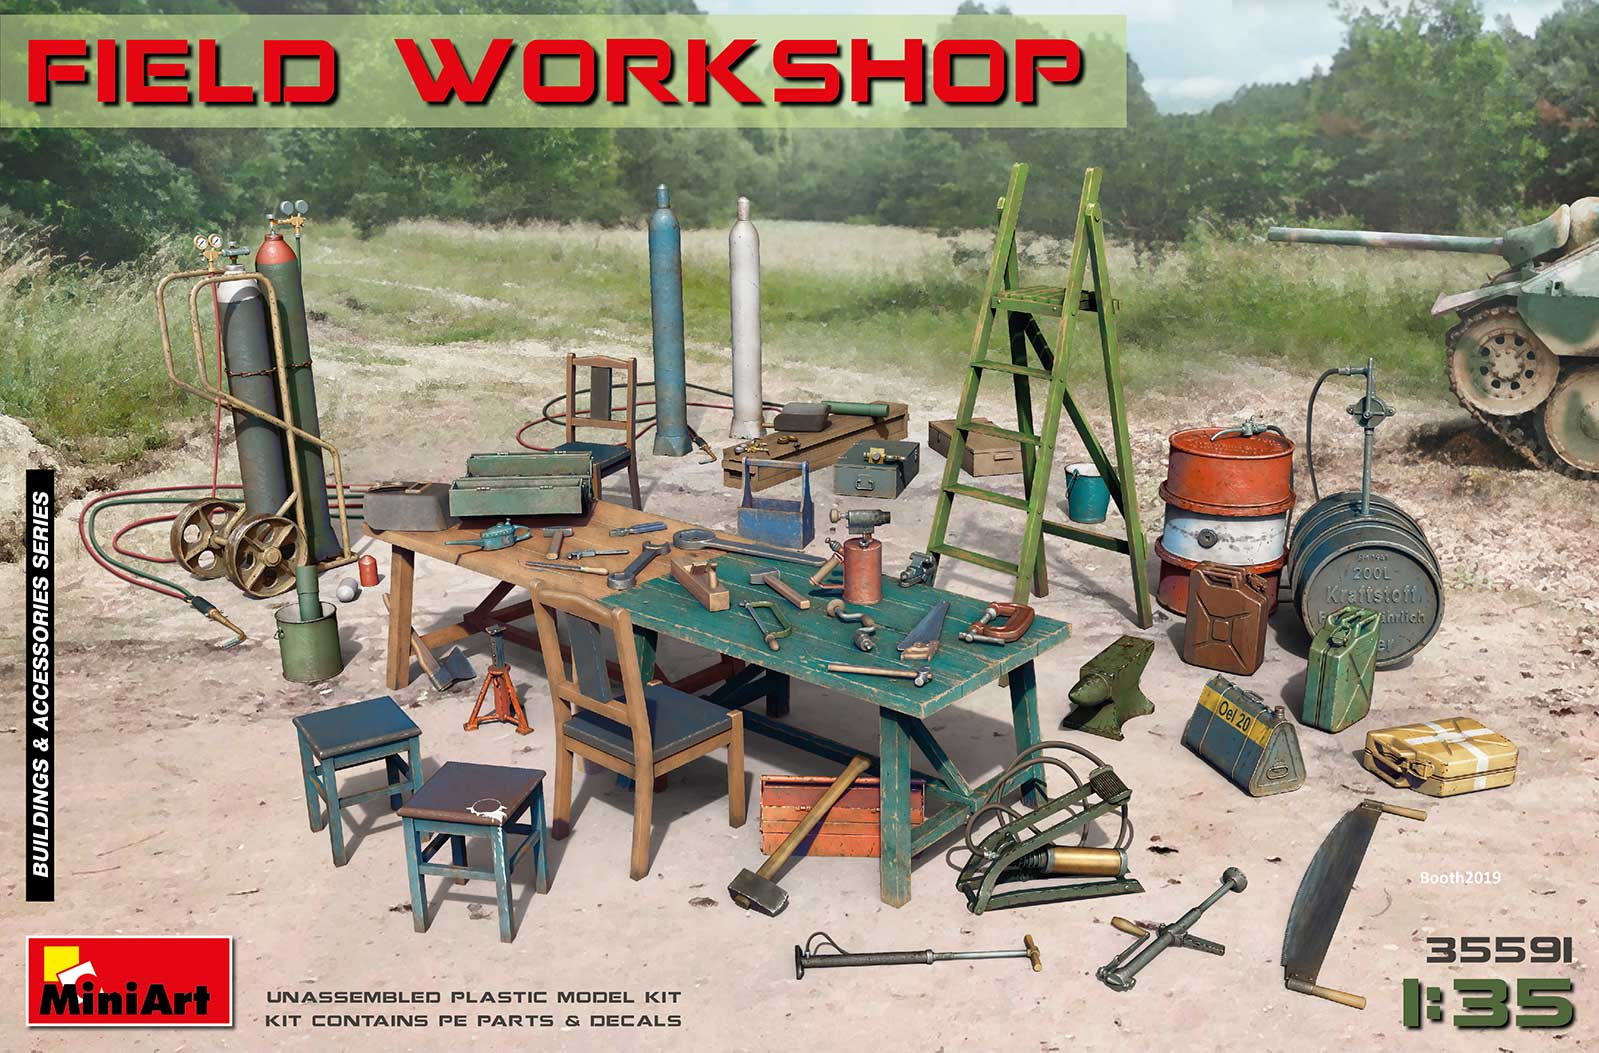 MiniArt Field Workshop